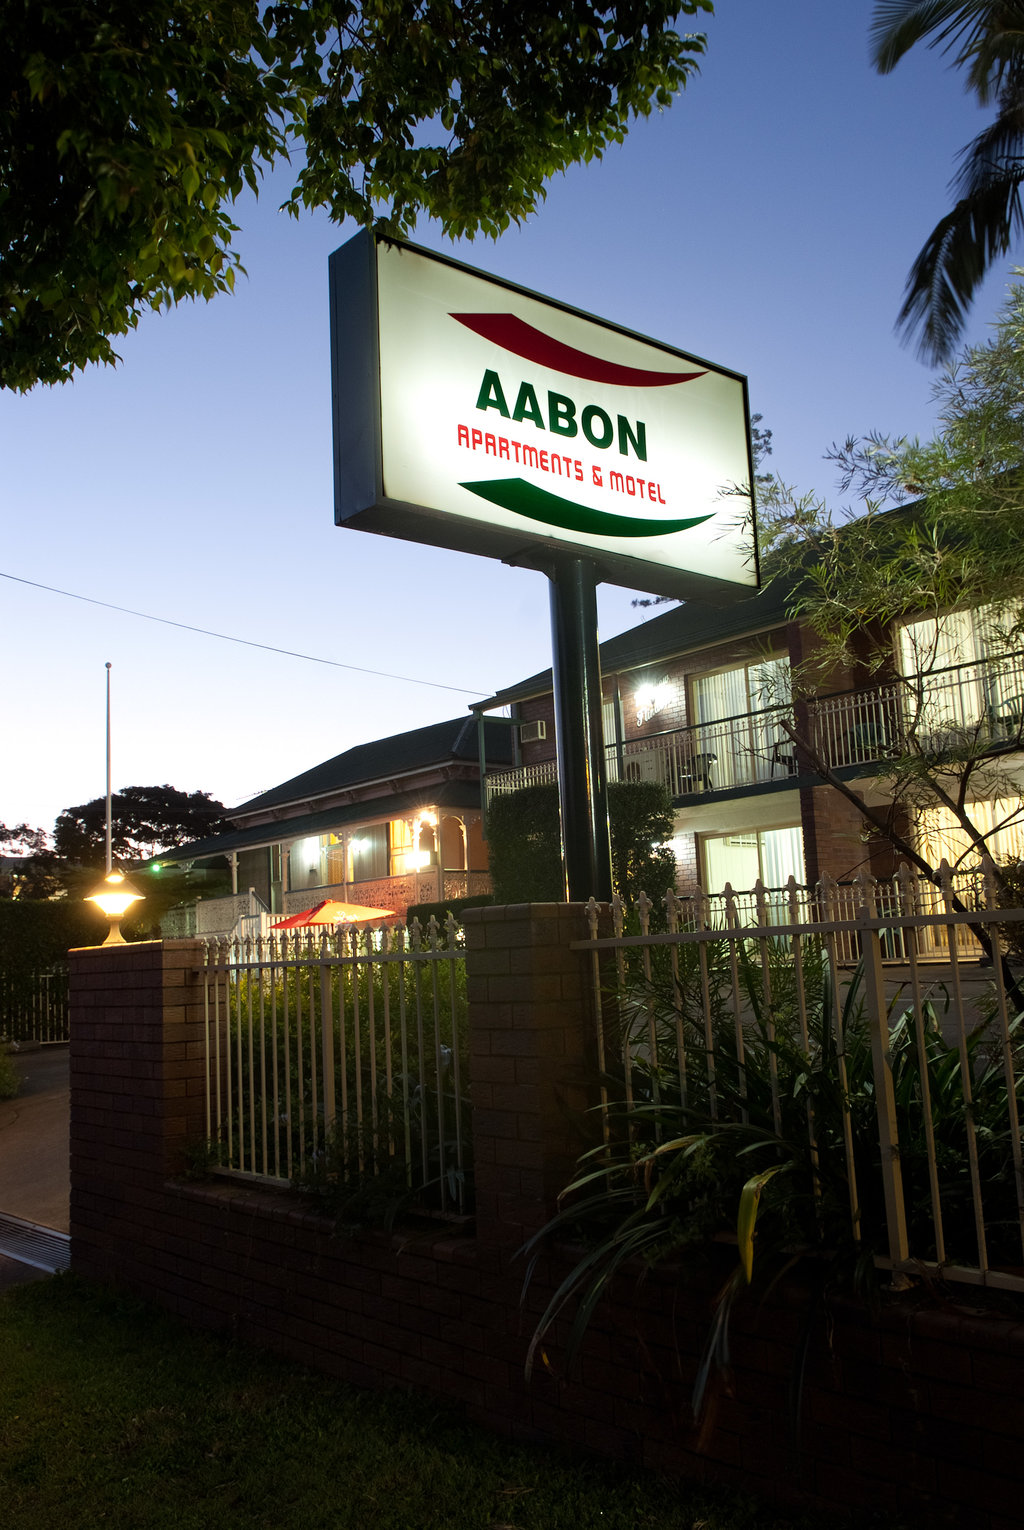 Aabon Apartments & Motel